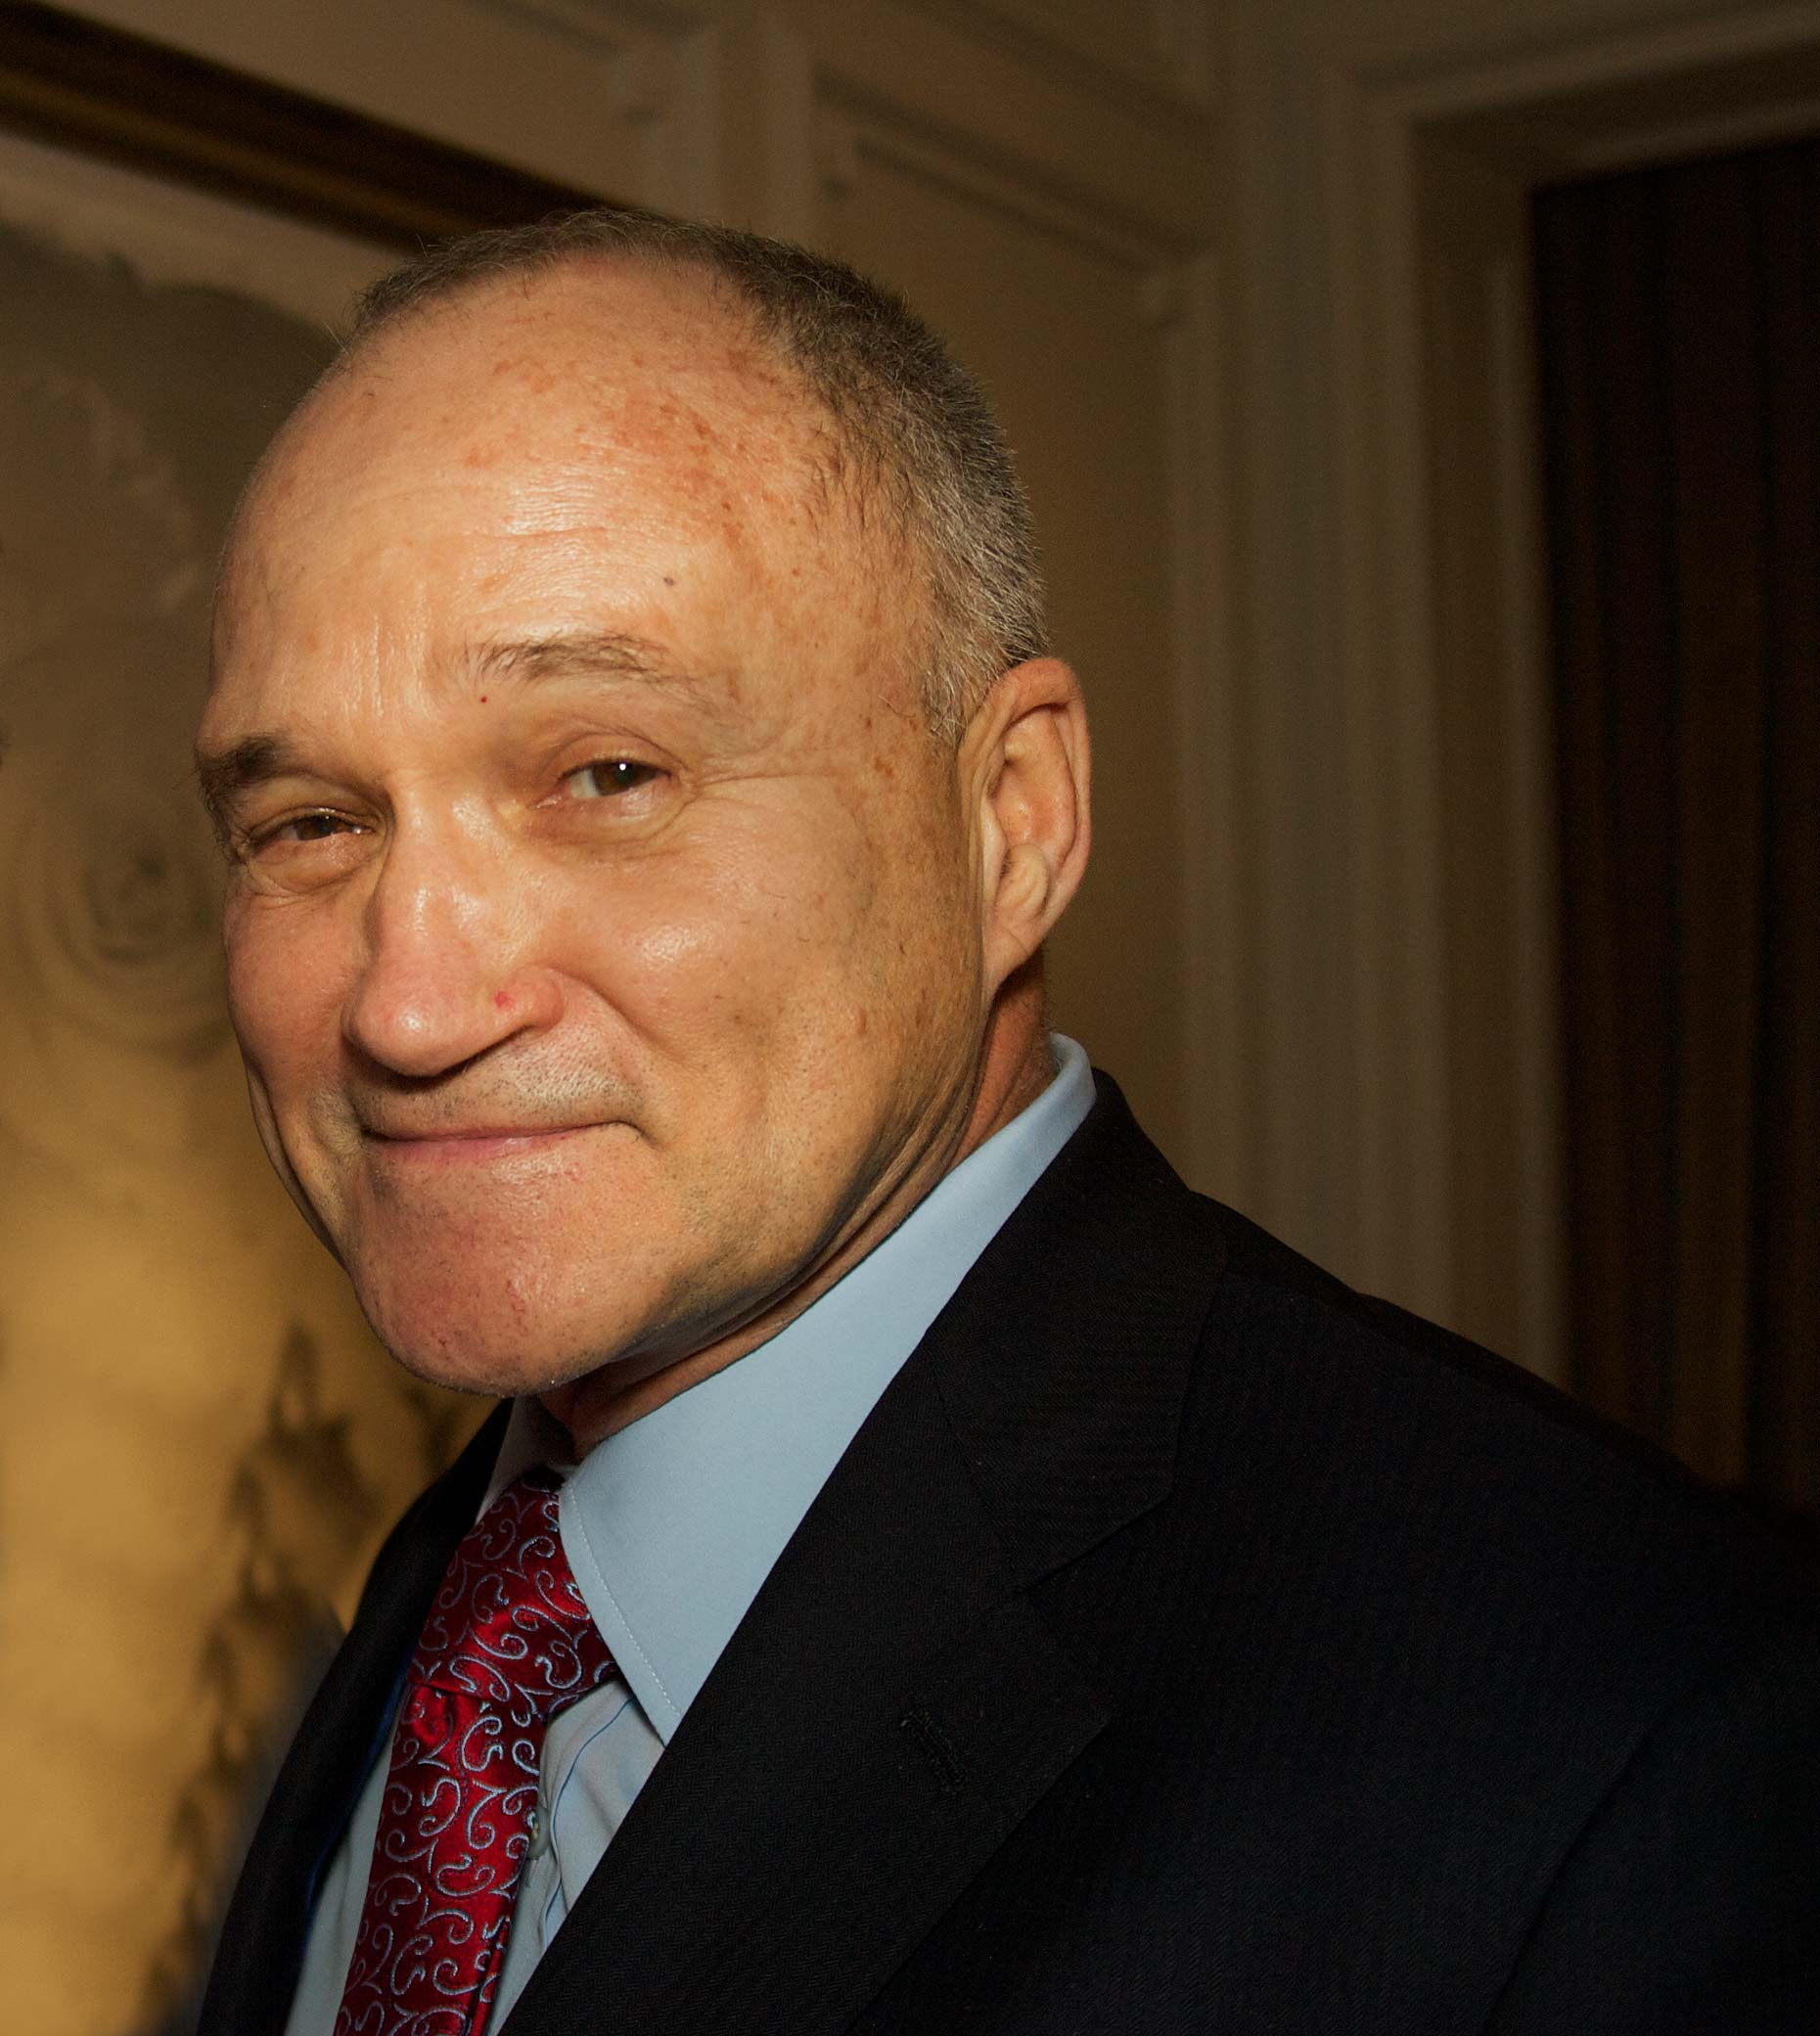 NYPD Police-Commisioner-Ray-Kelly.jpg